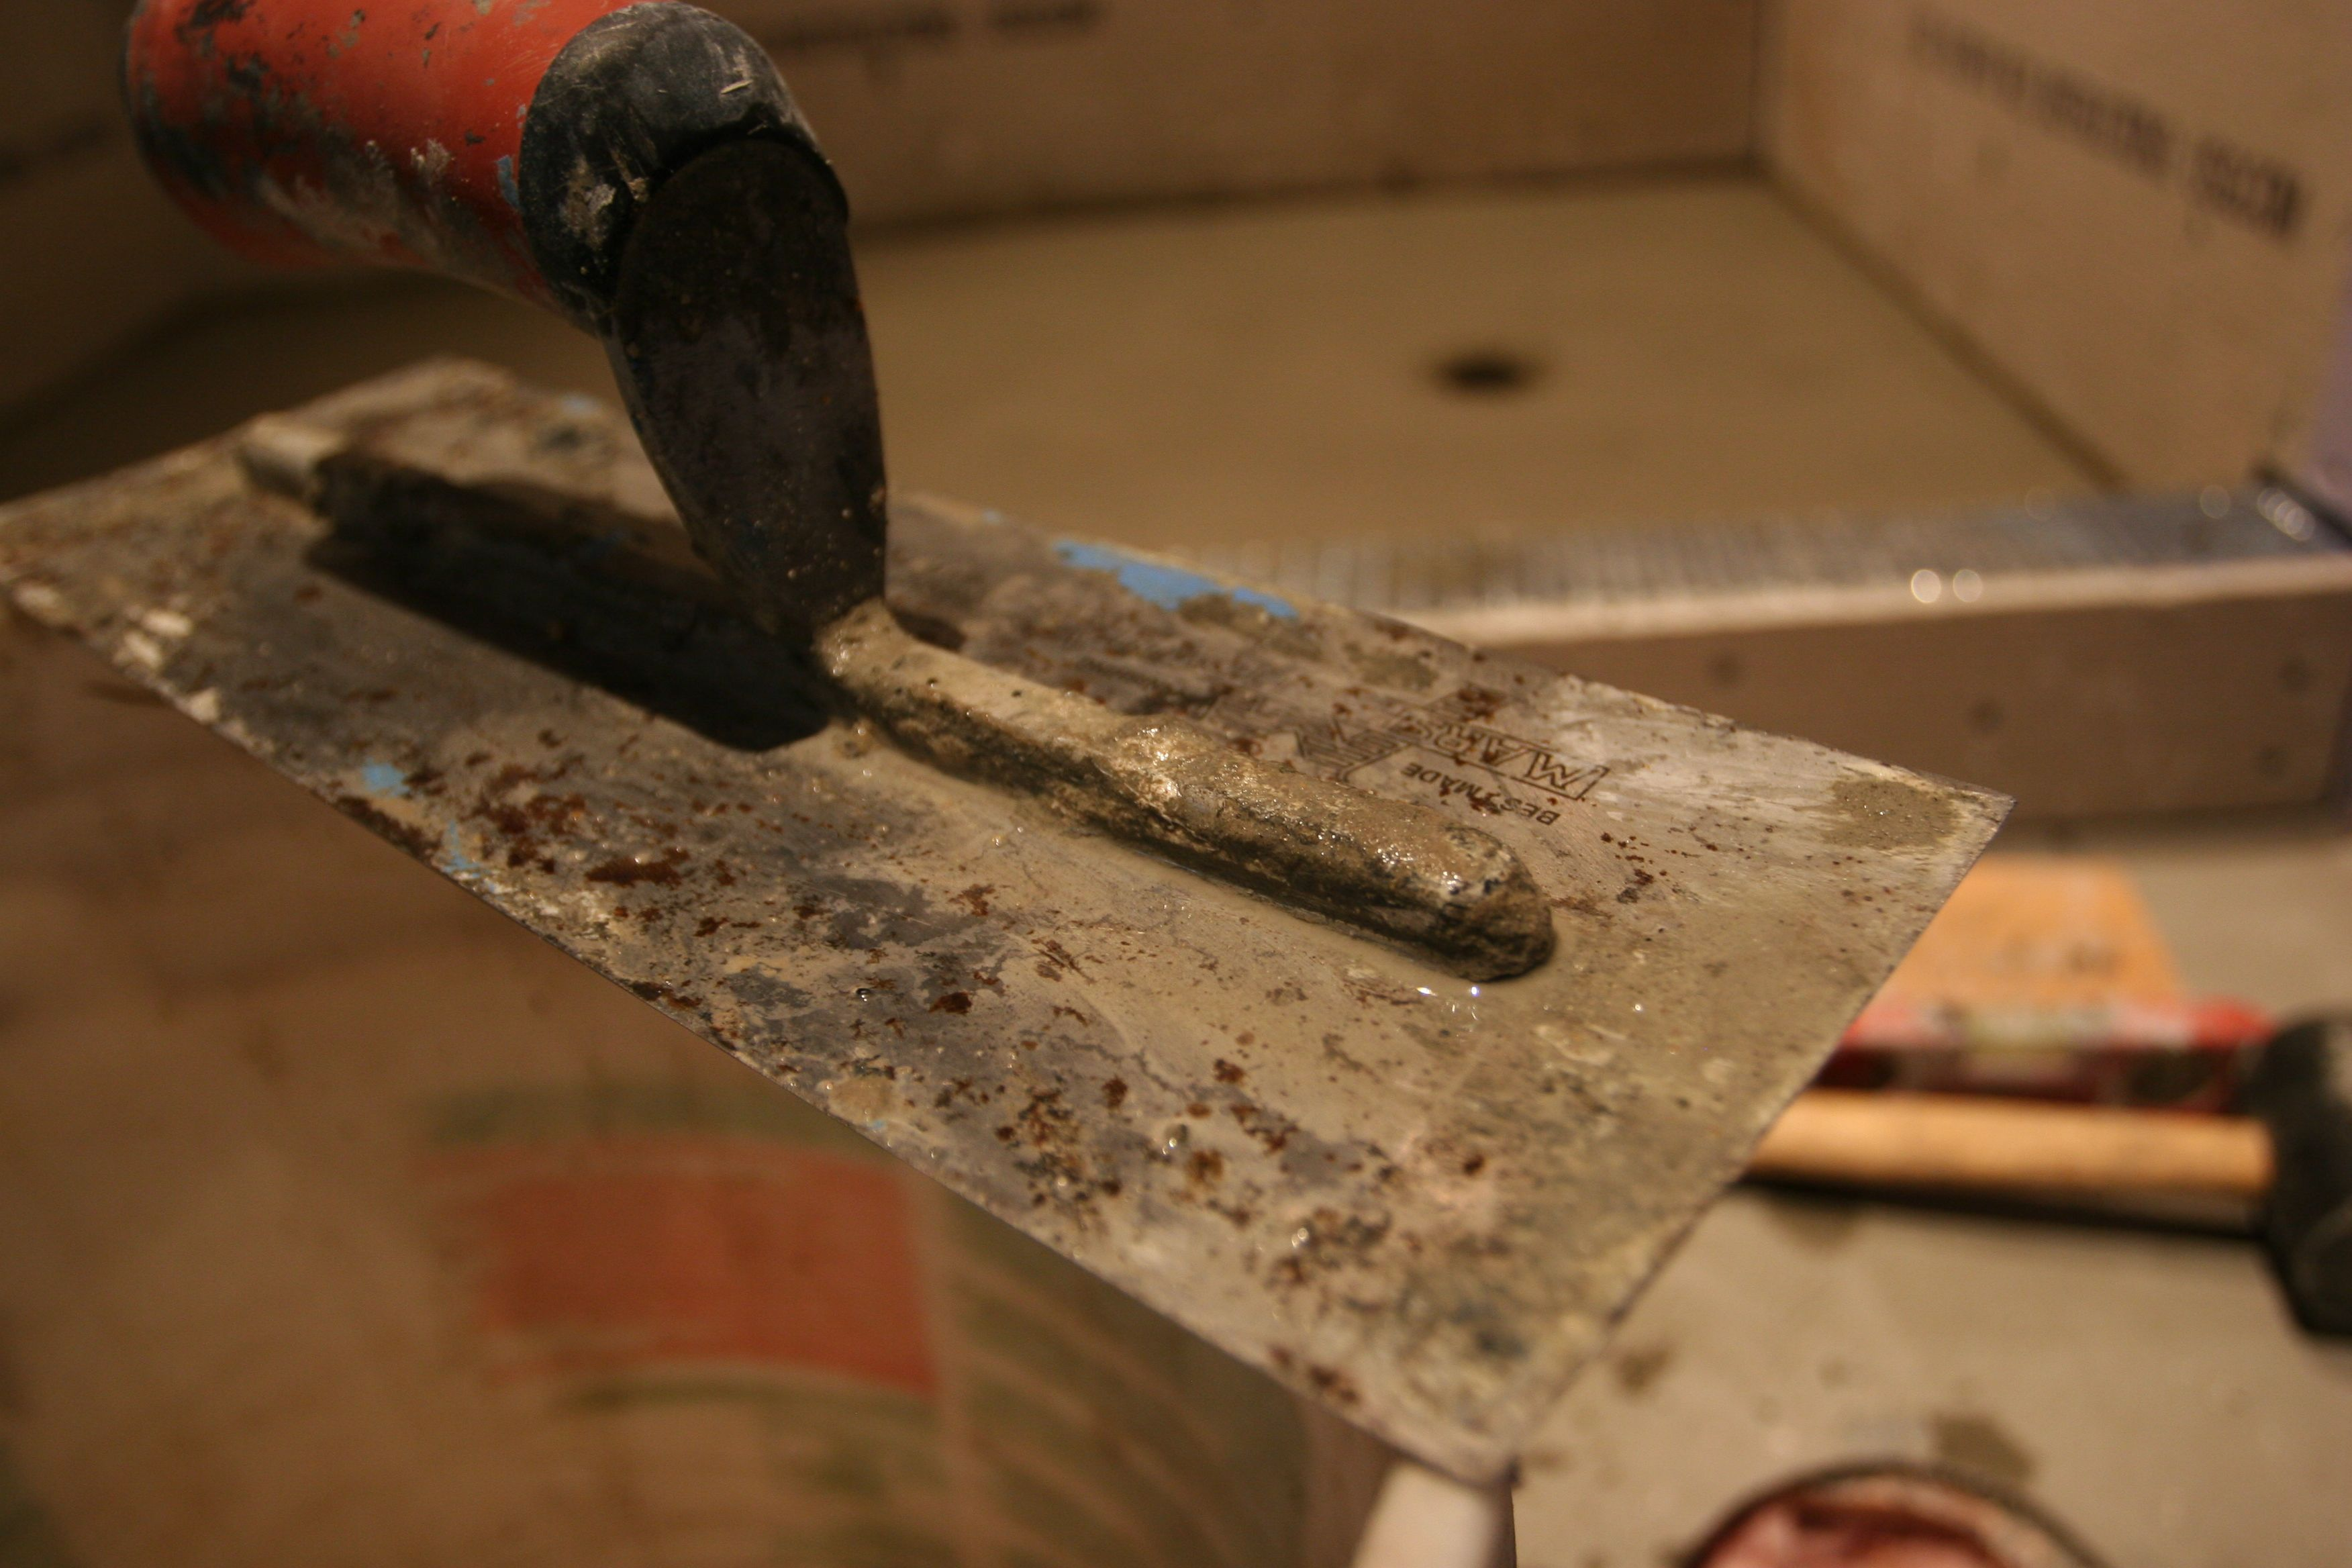 Awesome tool, all mucky with goo.